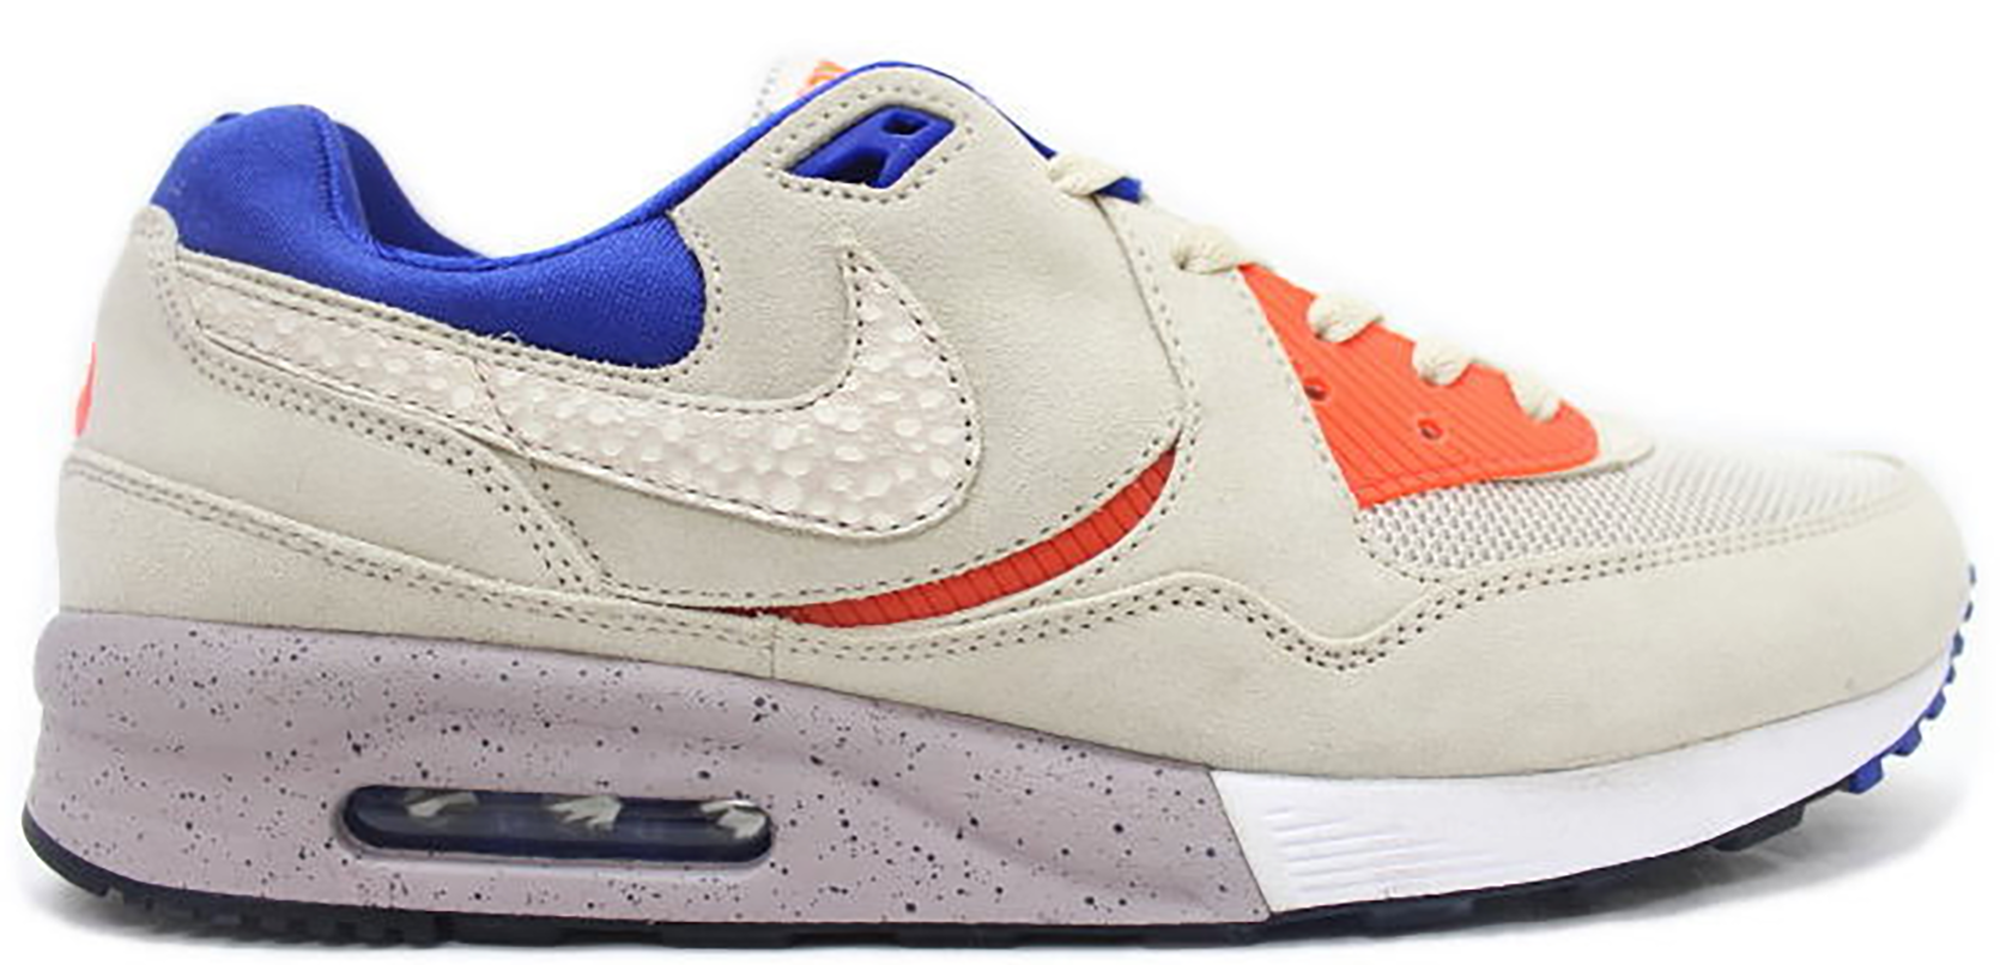 Nike Air Max Light size? Exclusive